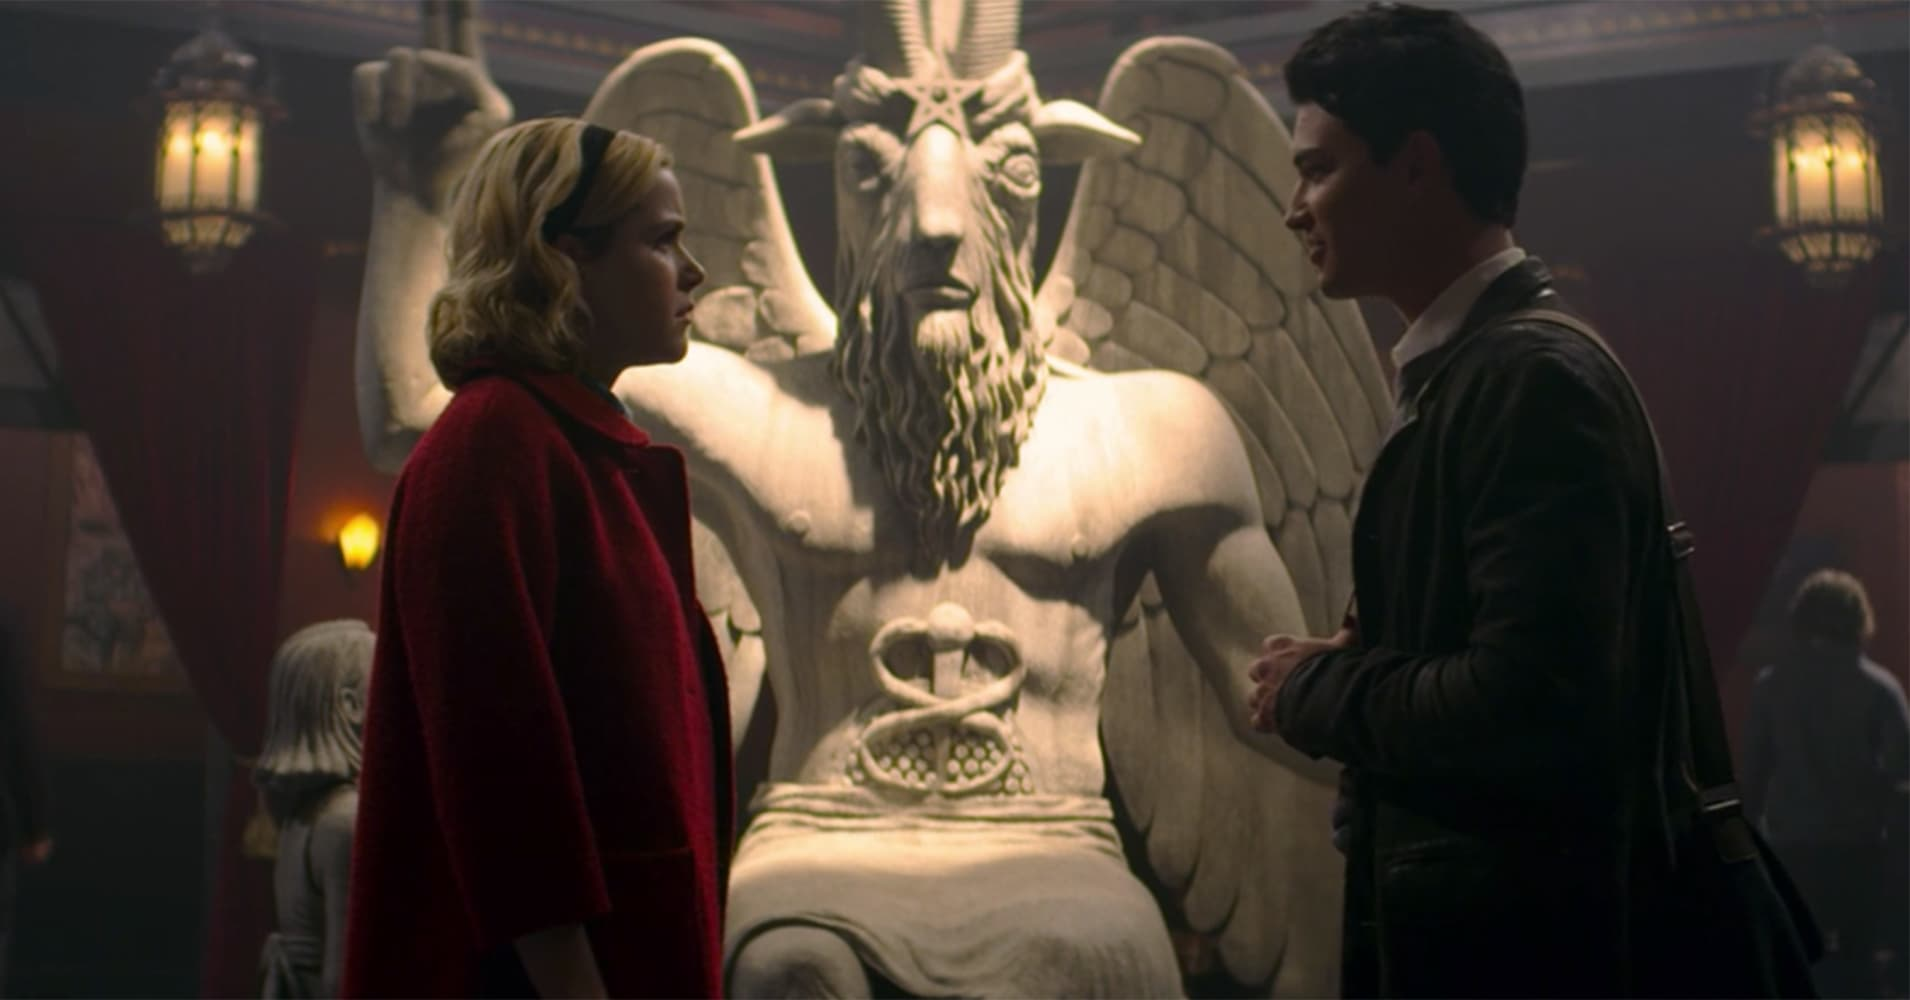 """The Satanic Temple is suing Netflix over the use of a Satanic statue used in the production of """"The Chilling Adventures of Sabrina""""."""